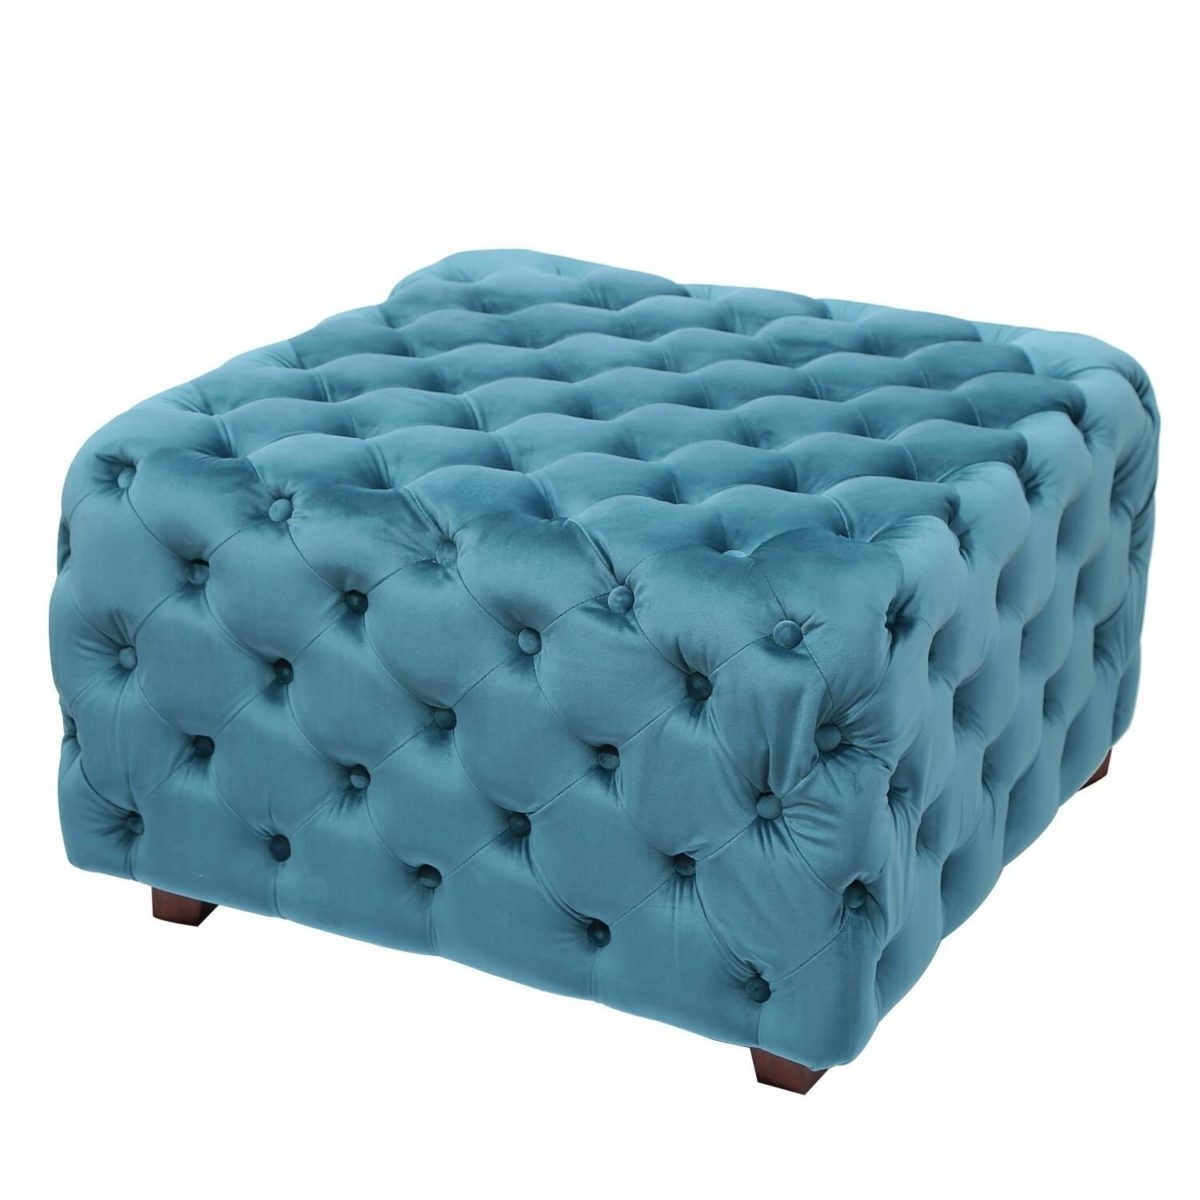 velvet ottoman, Get your home furniture including, Sofa, Bed, Sectional Sofa, Wardrobe, night stand, couches, dressing table Ottoman, Living Room Furniture.Sectional sofa, dubai furniture,furniture store near me, online furniture store, home furniture, best furniture in dubai, accent chair, armless chair, online furniture store in dubai, office furniture